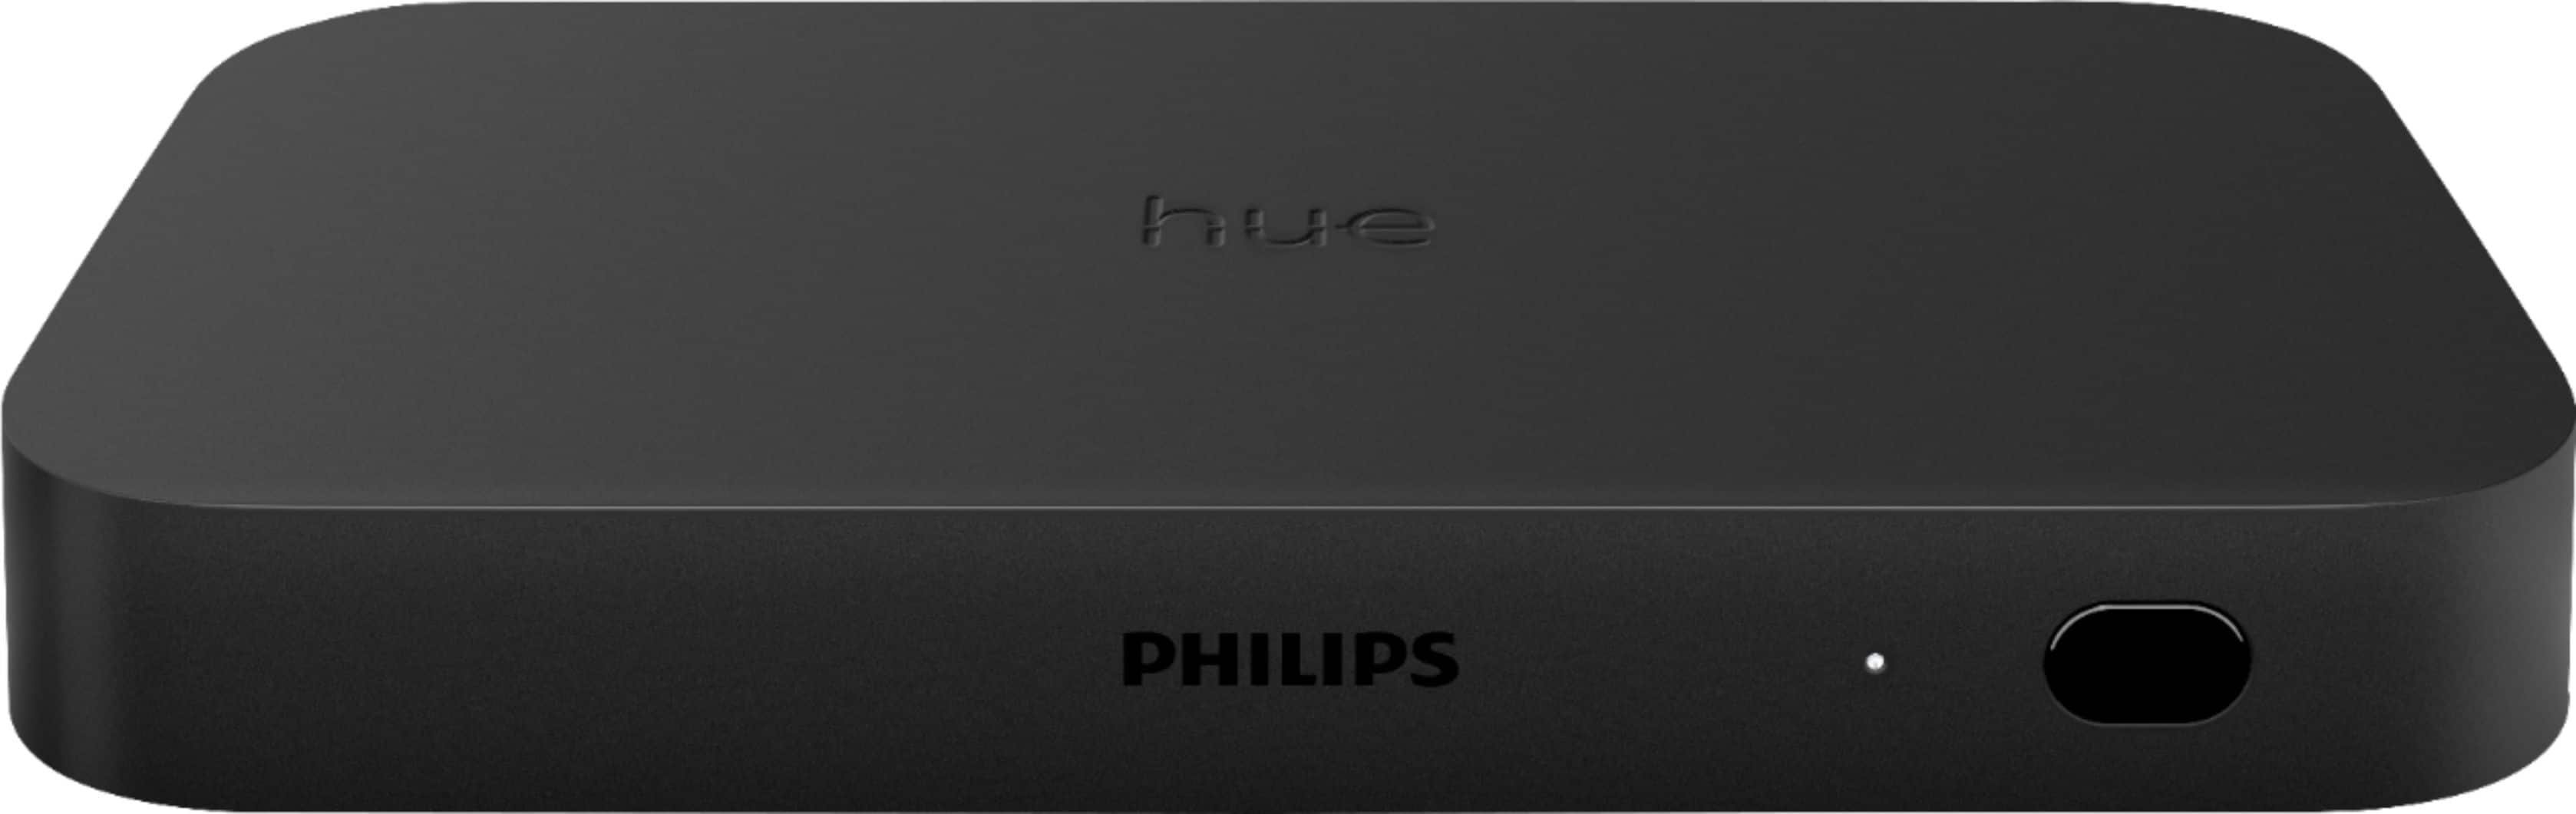 Philips Hue HDMI Sync Box $229.99 at Best Buy with store pickup (regular price but hard to find)